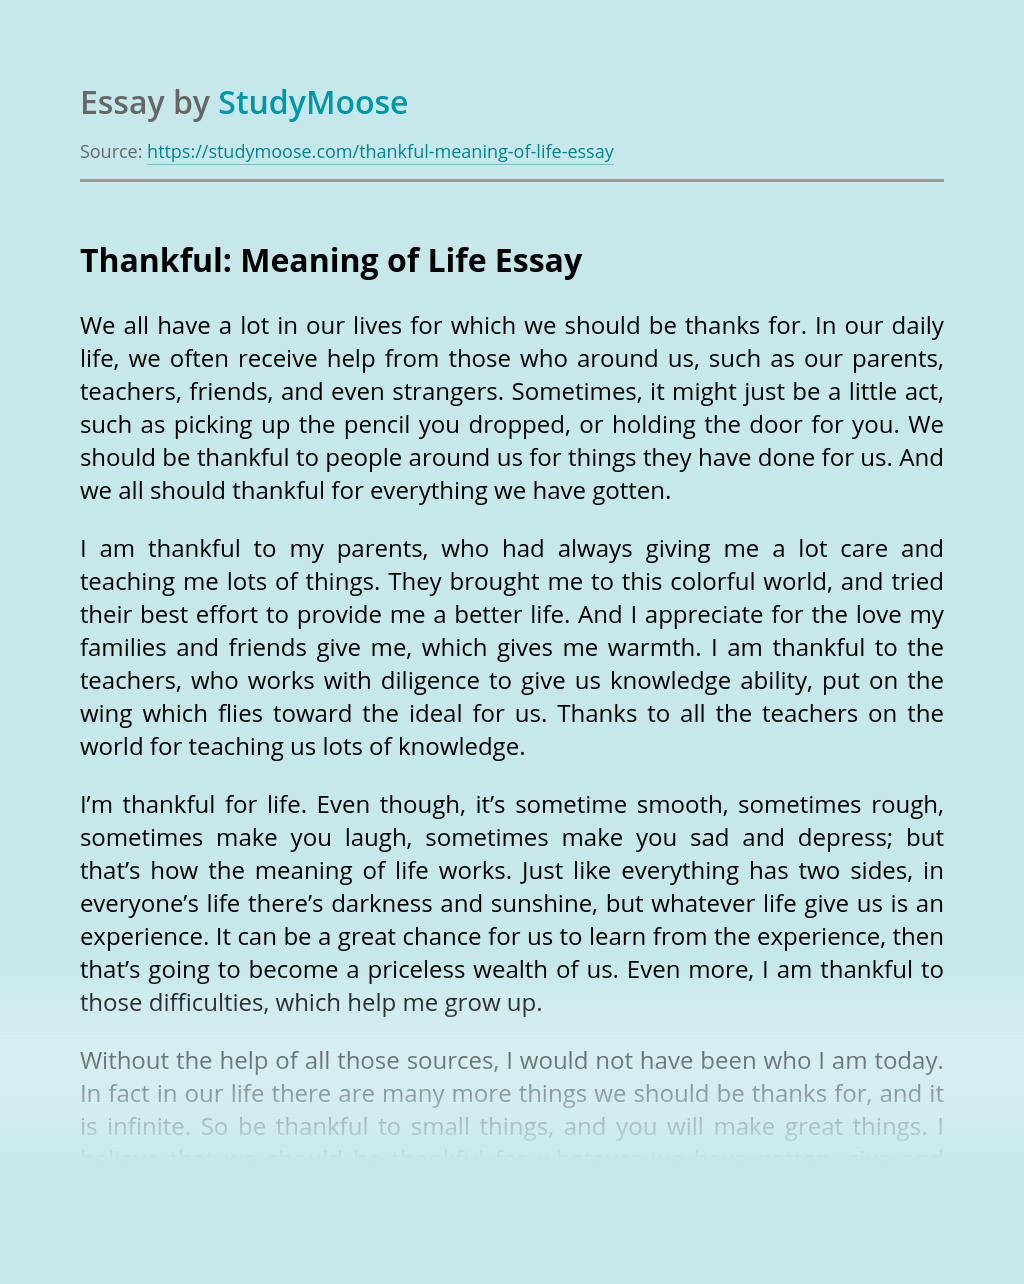 Thankful: Meaning of Life